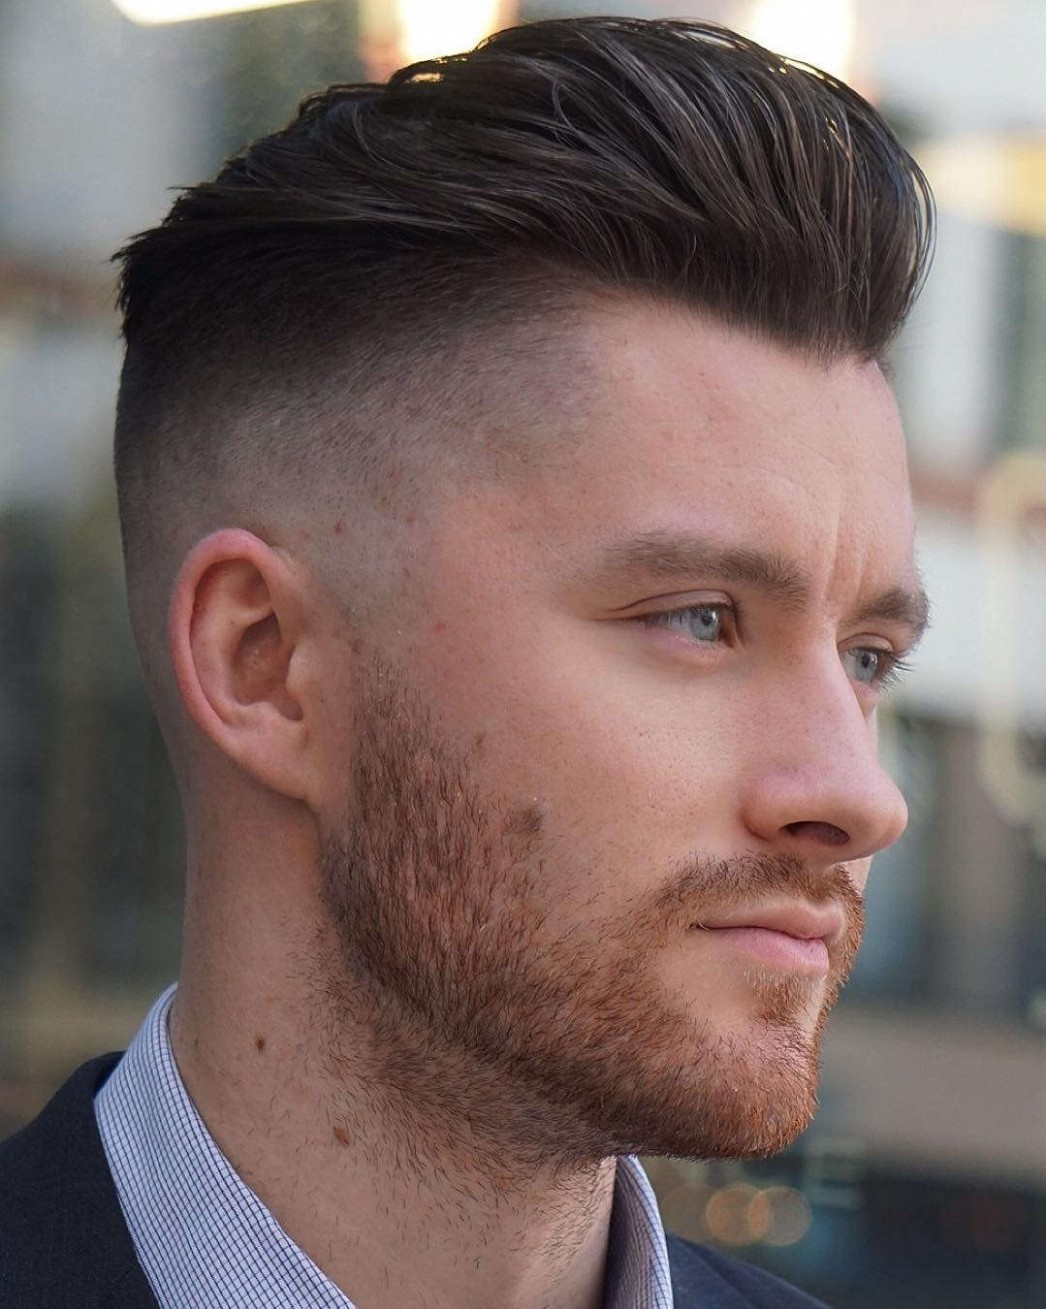 11 Stylish Undercut Hairstyle Variations To Copy In 11: A Short Undercut